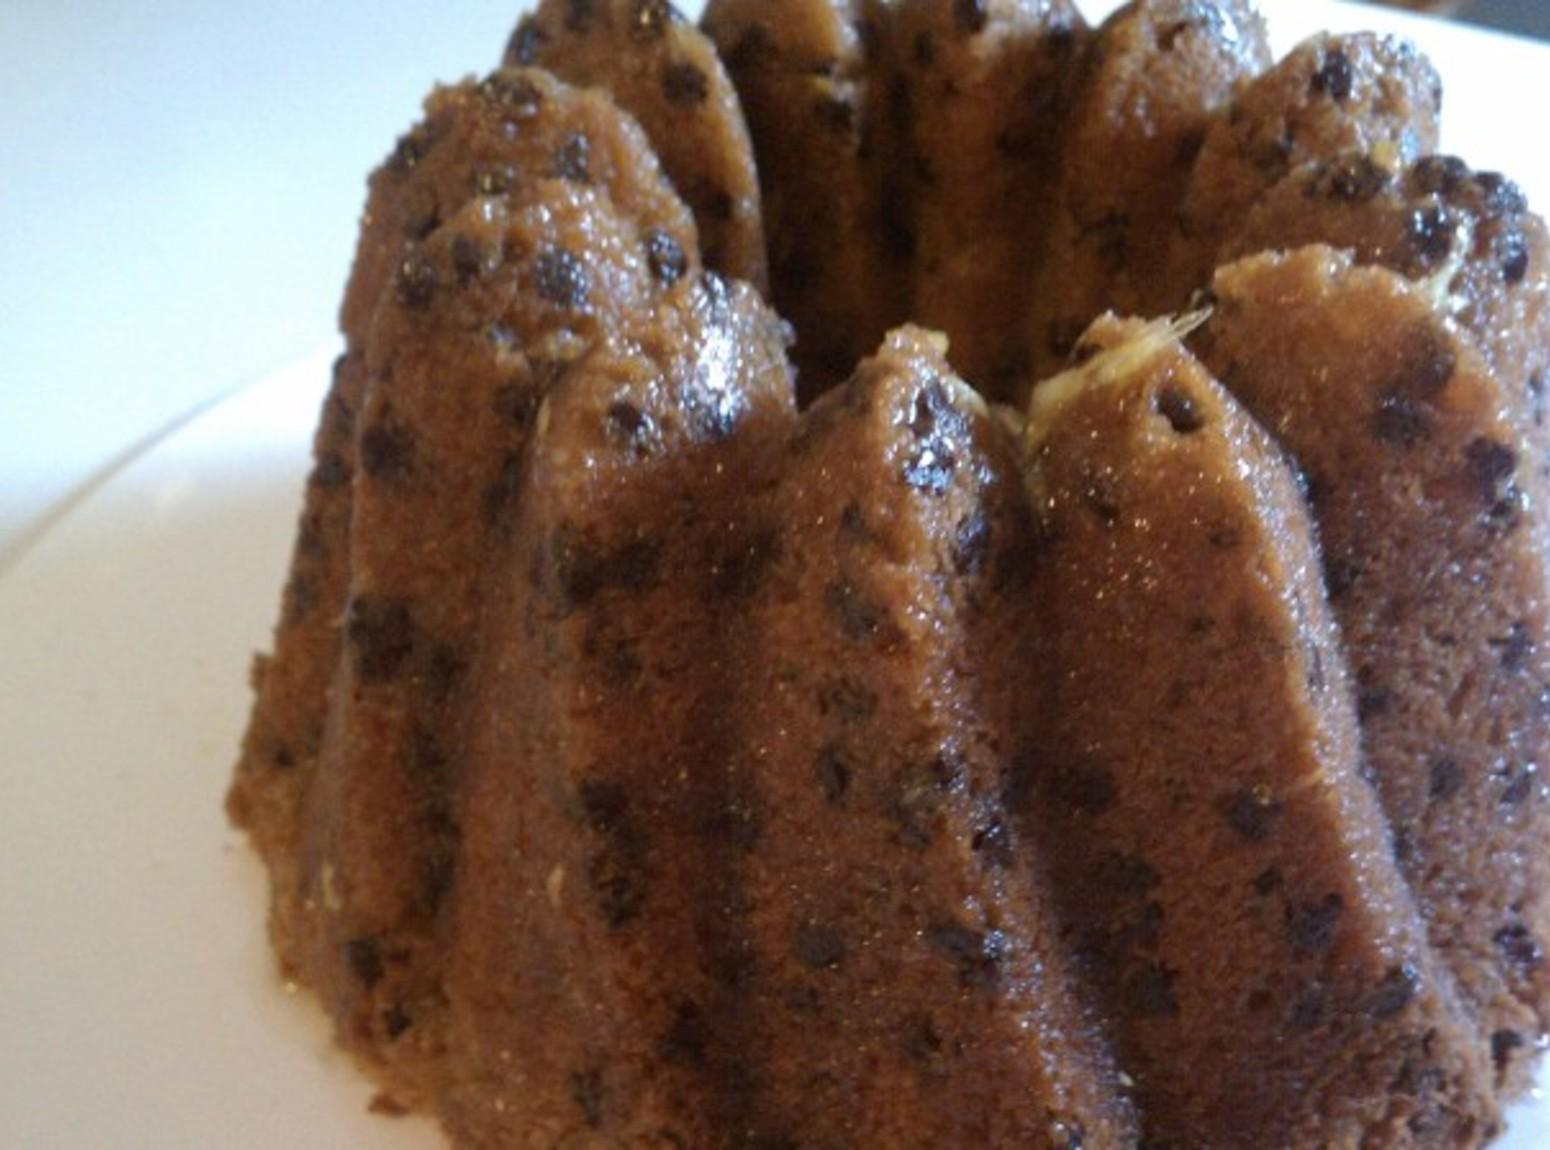 Orange Chocolate Chip Bundt Cake Recipe | Just A Pinch Recipes